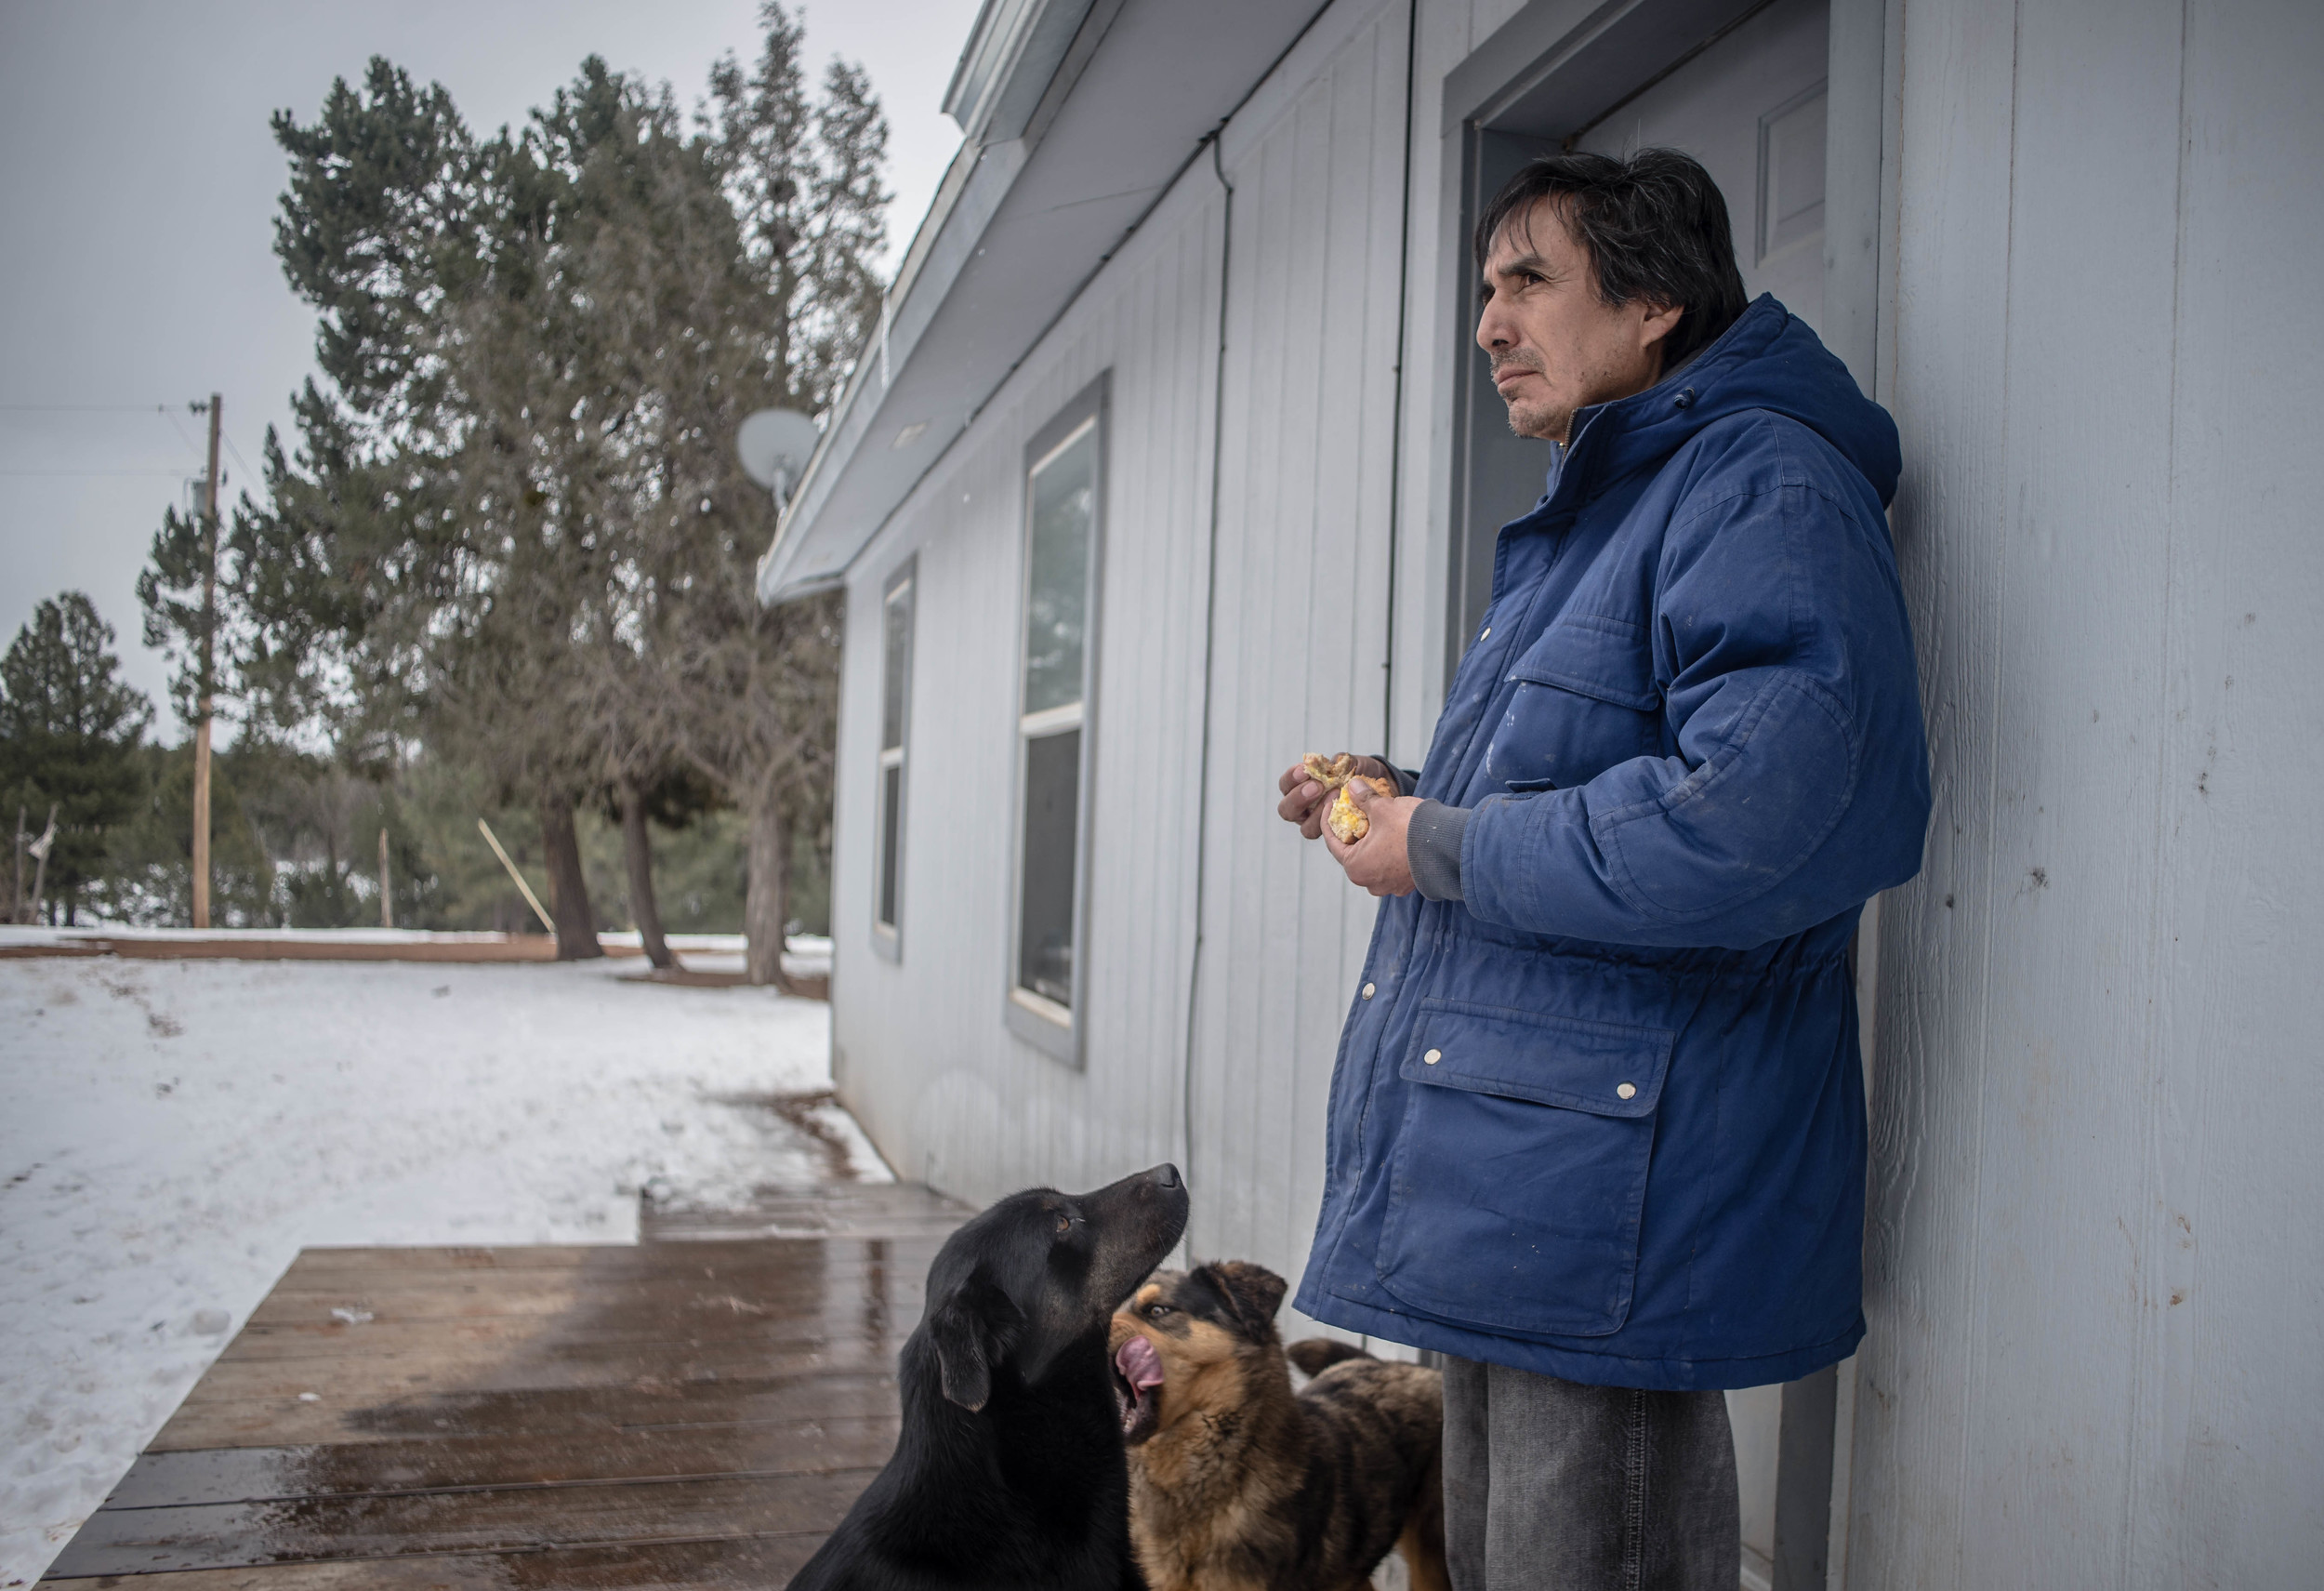 Jasper Peshlakai stands In front of his home atop a hill near Crystal on Thursday, recounting the story his niece told him about the niece's kicking a mother and her 13-month-old child out of her truck. The child was found dead the next morning in a culvert. (Roberto E. Rosales/Albuquerque Journal)